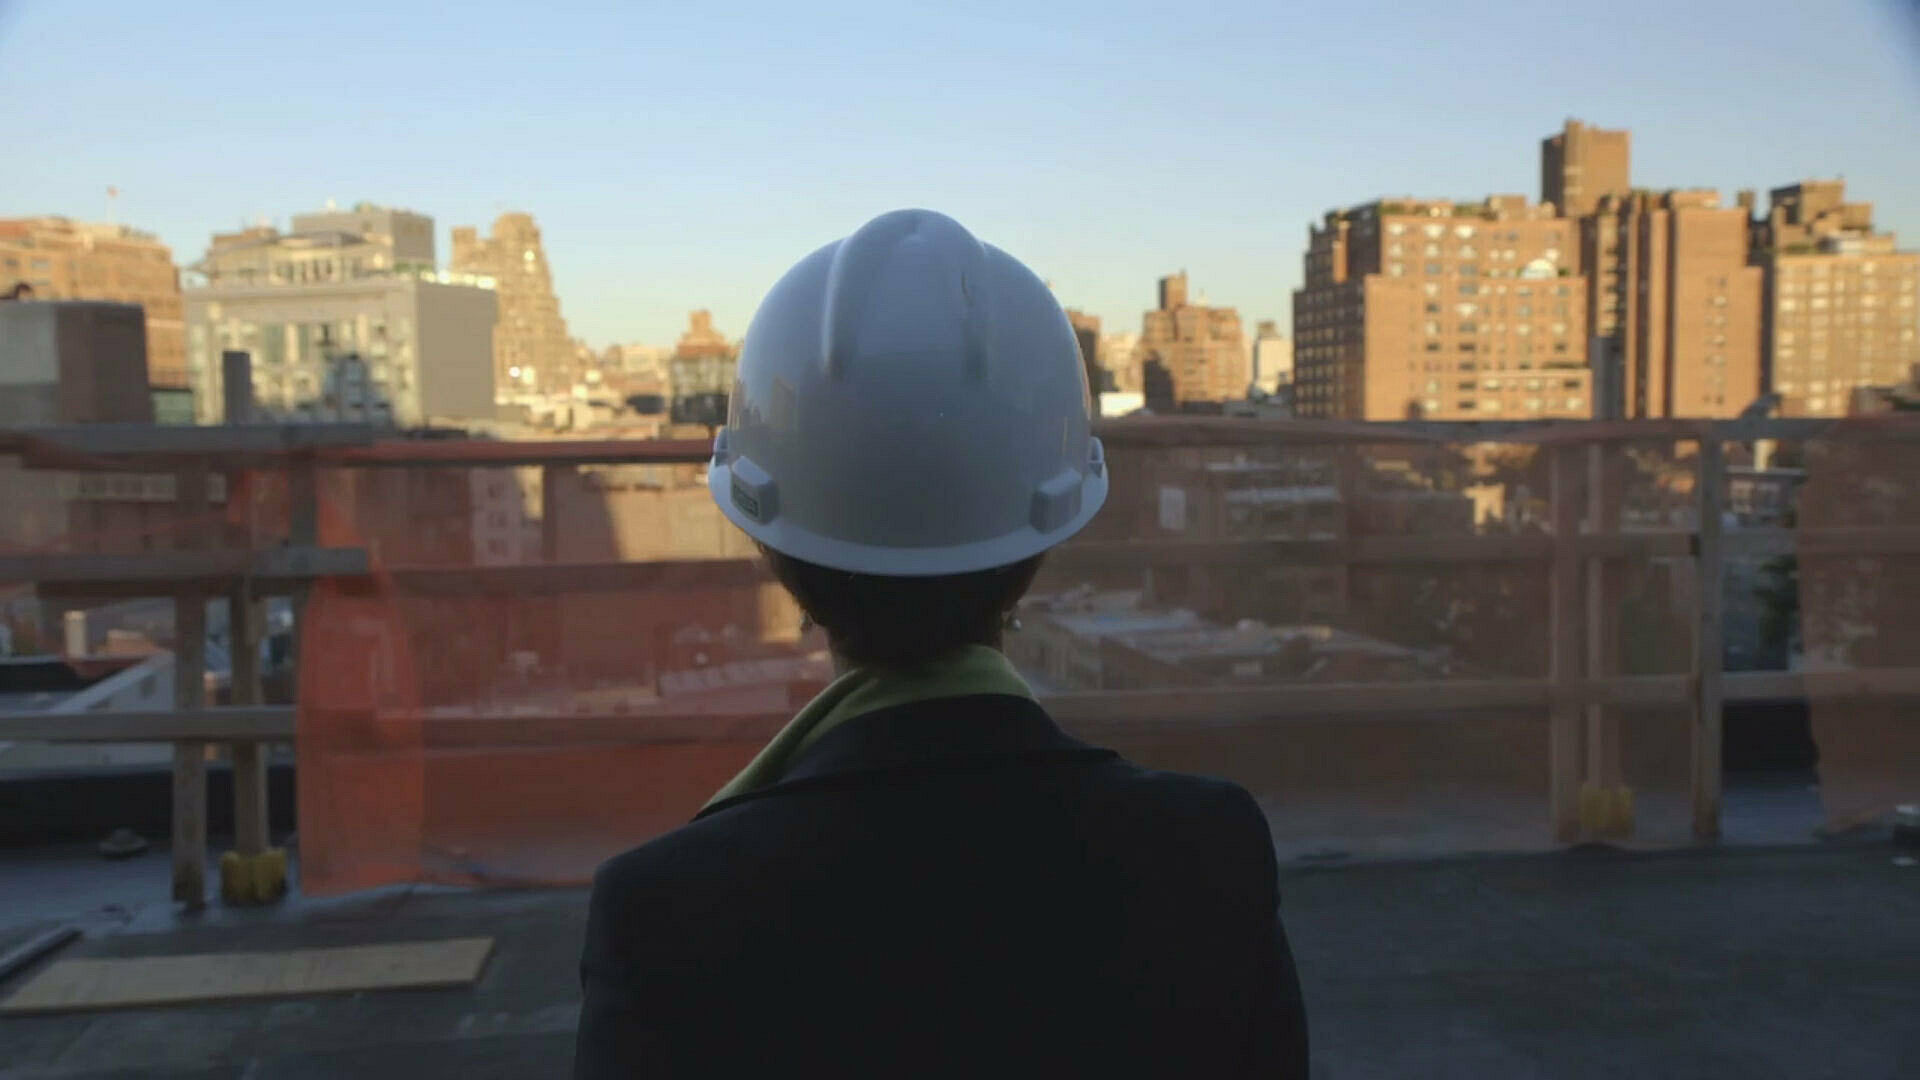 Video of construction of the Whitney Museum.